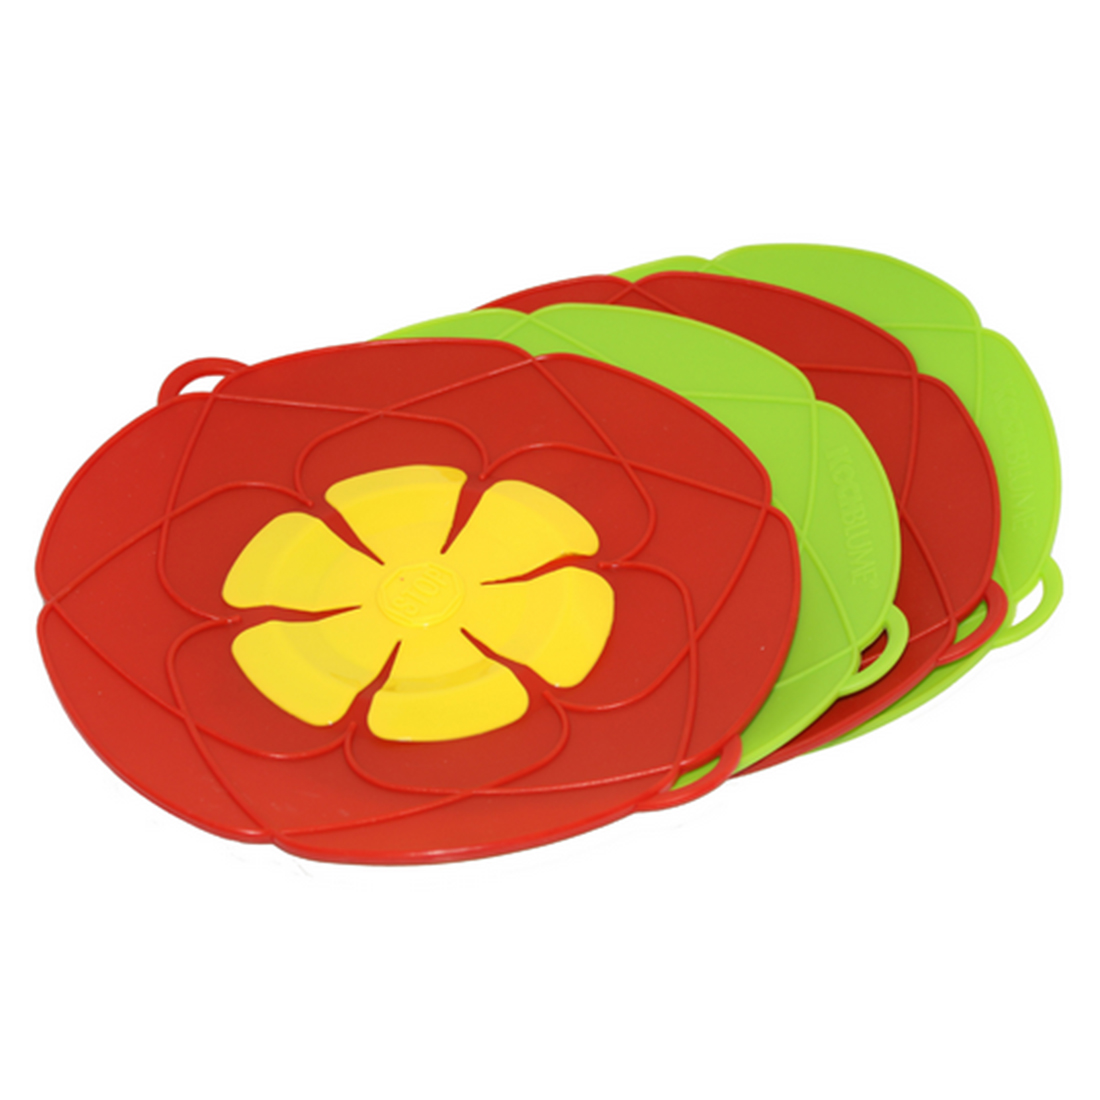 E-SHOW Bloom Kitchen Silicone Pot Anti Overflow Lid Spill Stopper Pan Boil Over Safeguard Cover Caps Against Iron Cooking Tools